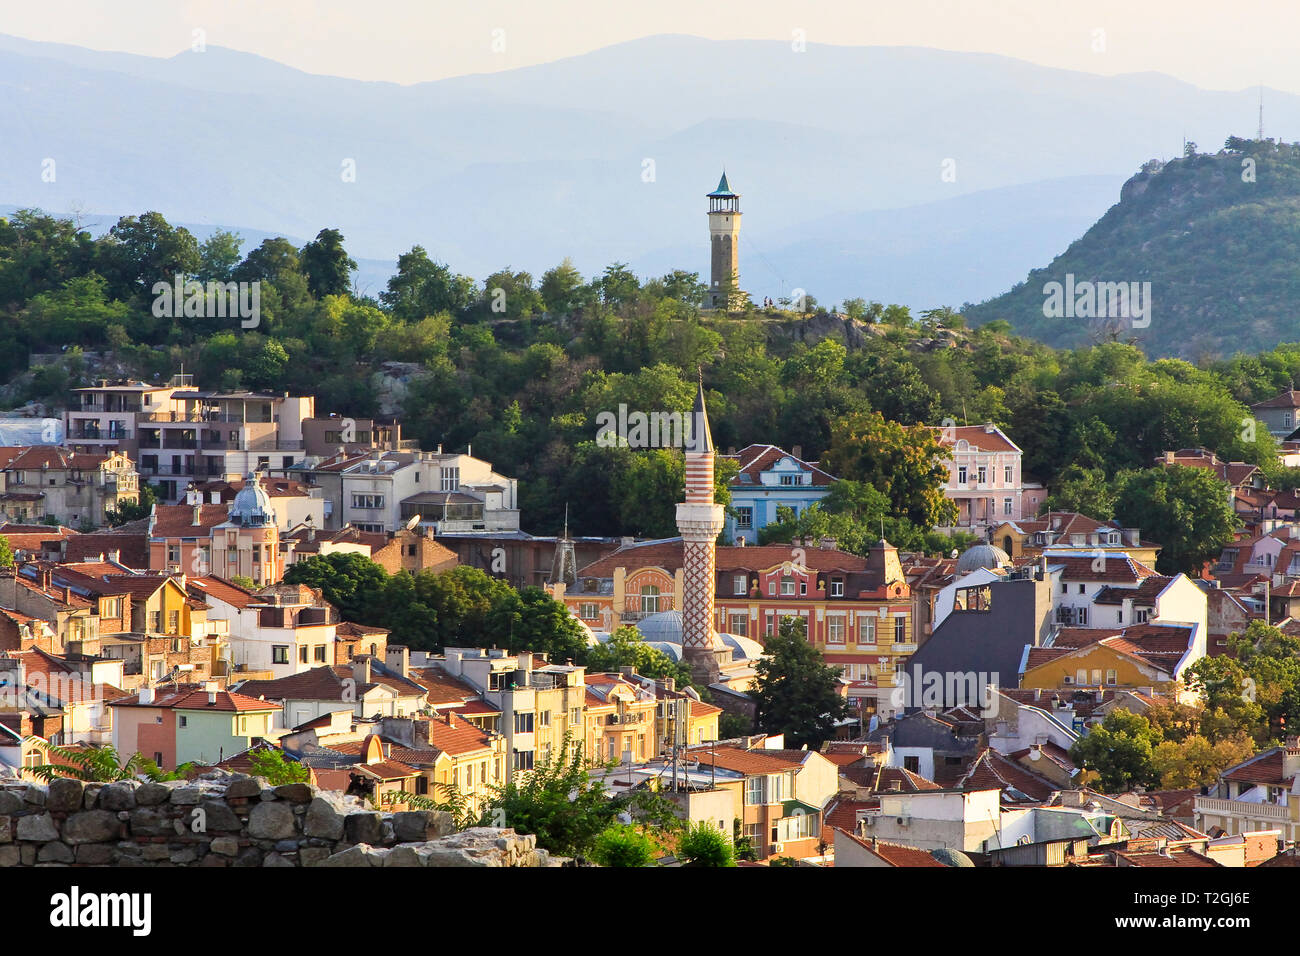 View of the city of Plovdiv, Bulgaria Stock Photo